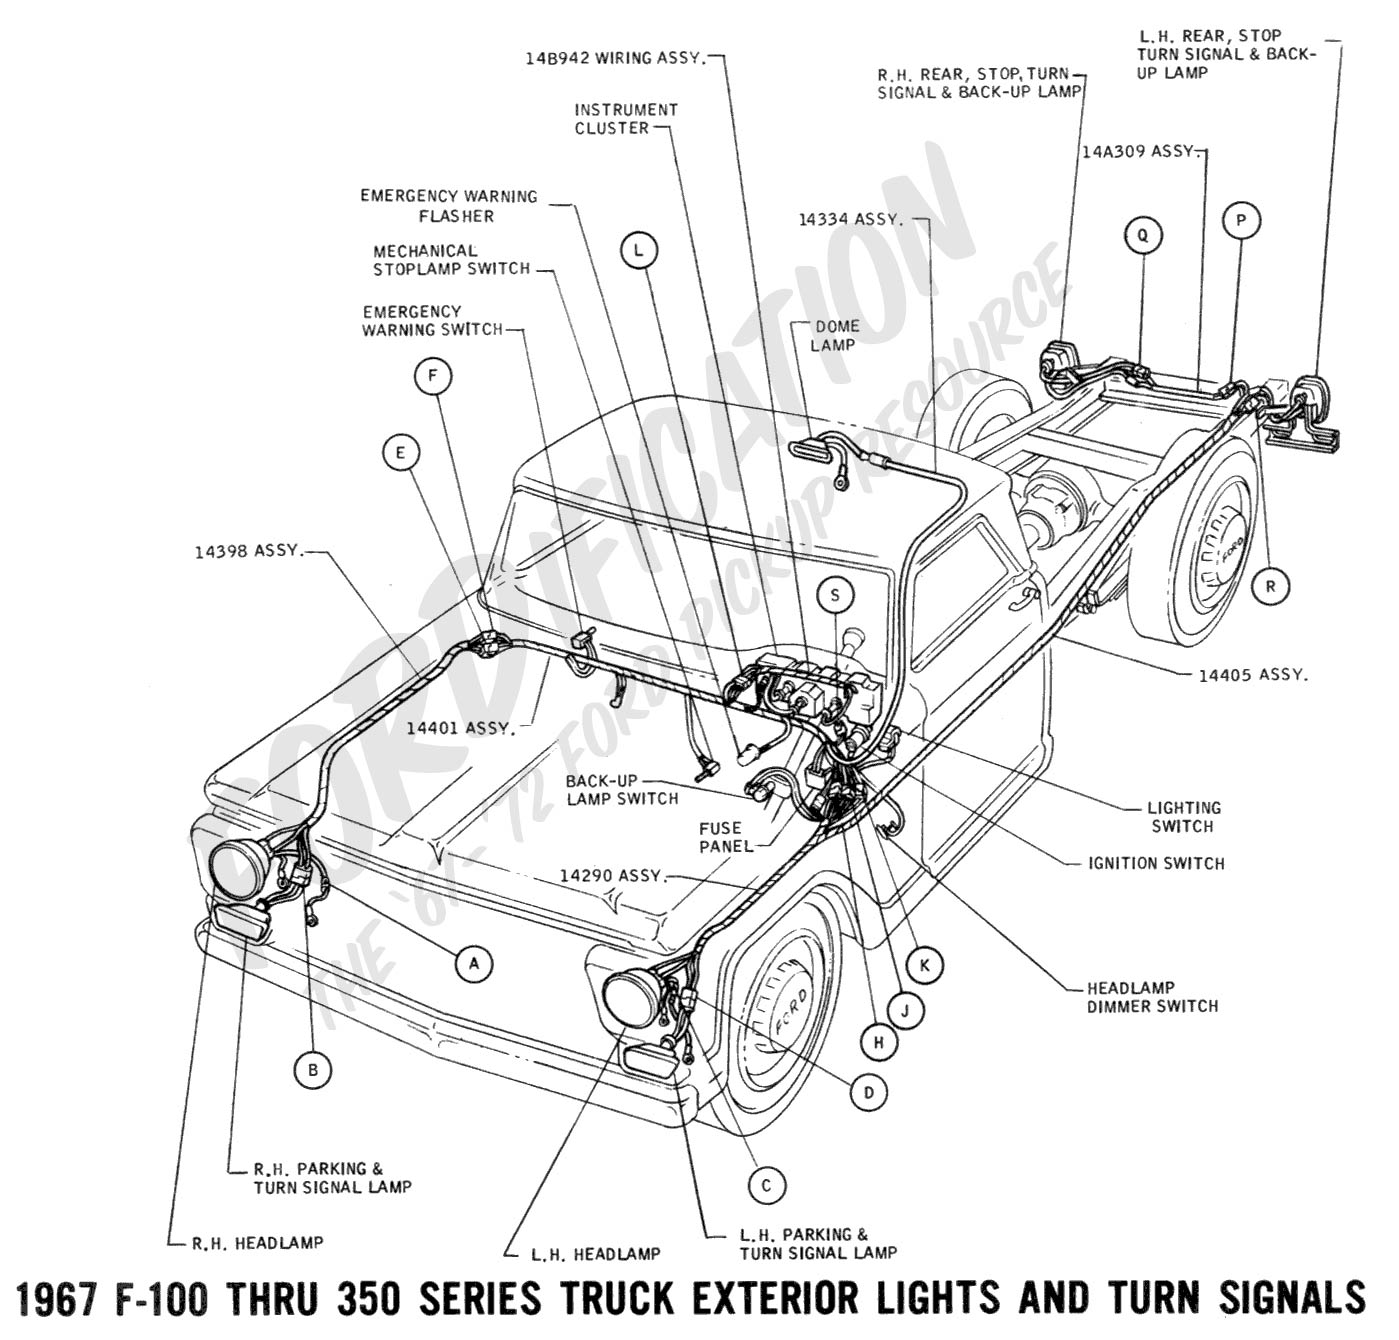 wiring 1967extlights01 ford truck technical drawings and schematics section h wiring Chevy Headlight Switch Wiring Diagram at aneh.co